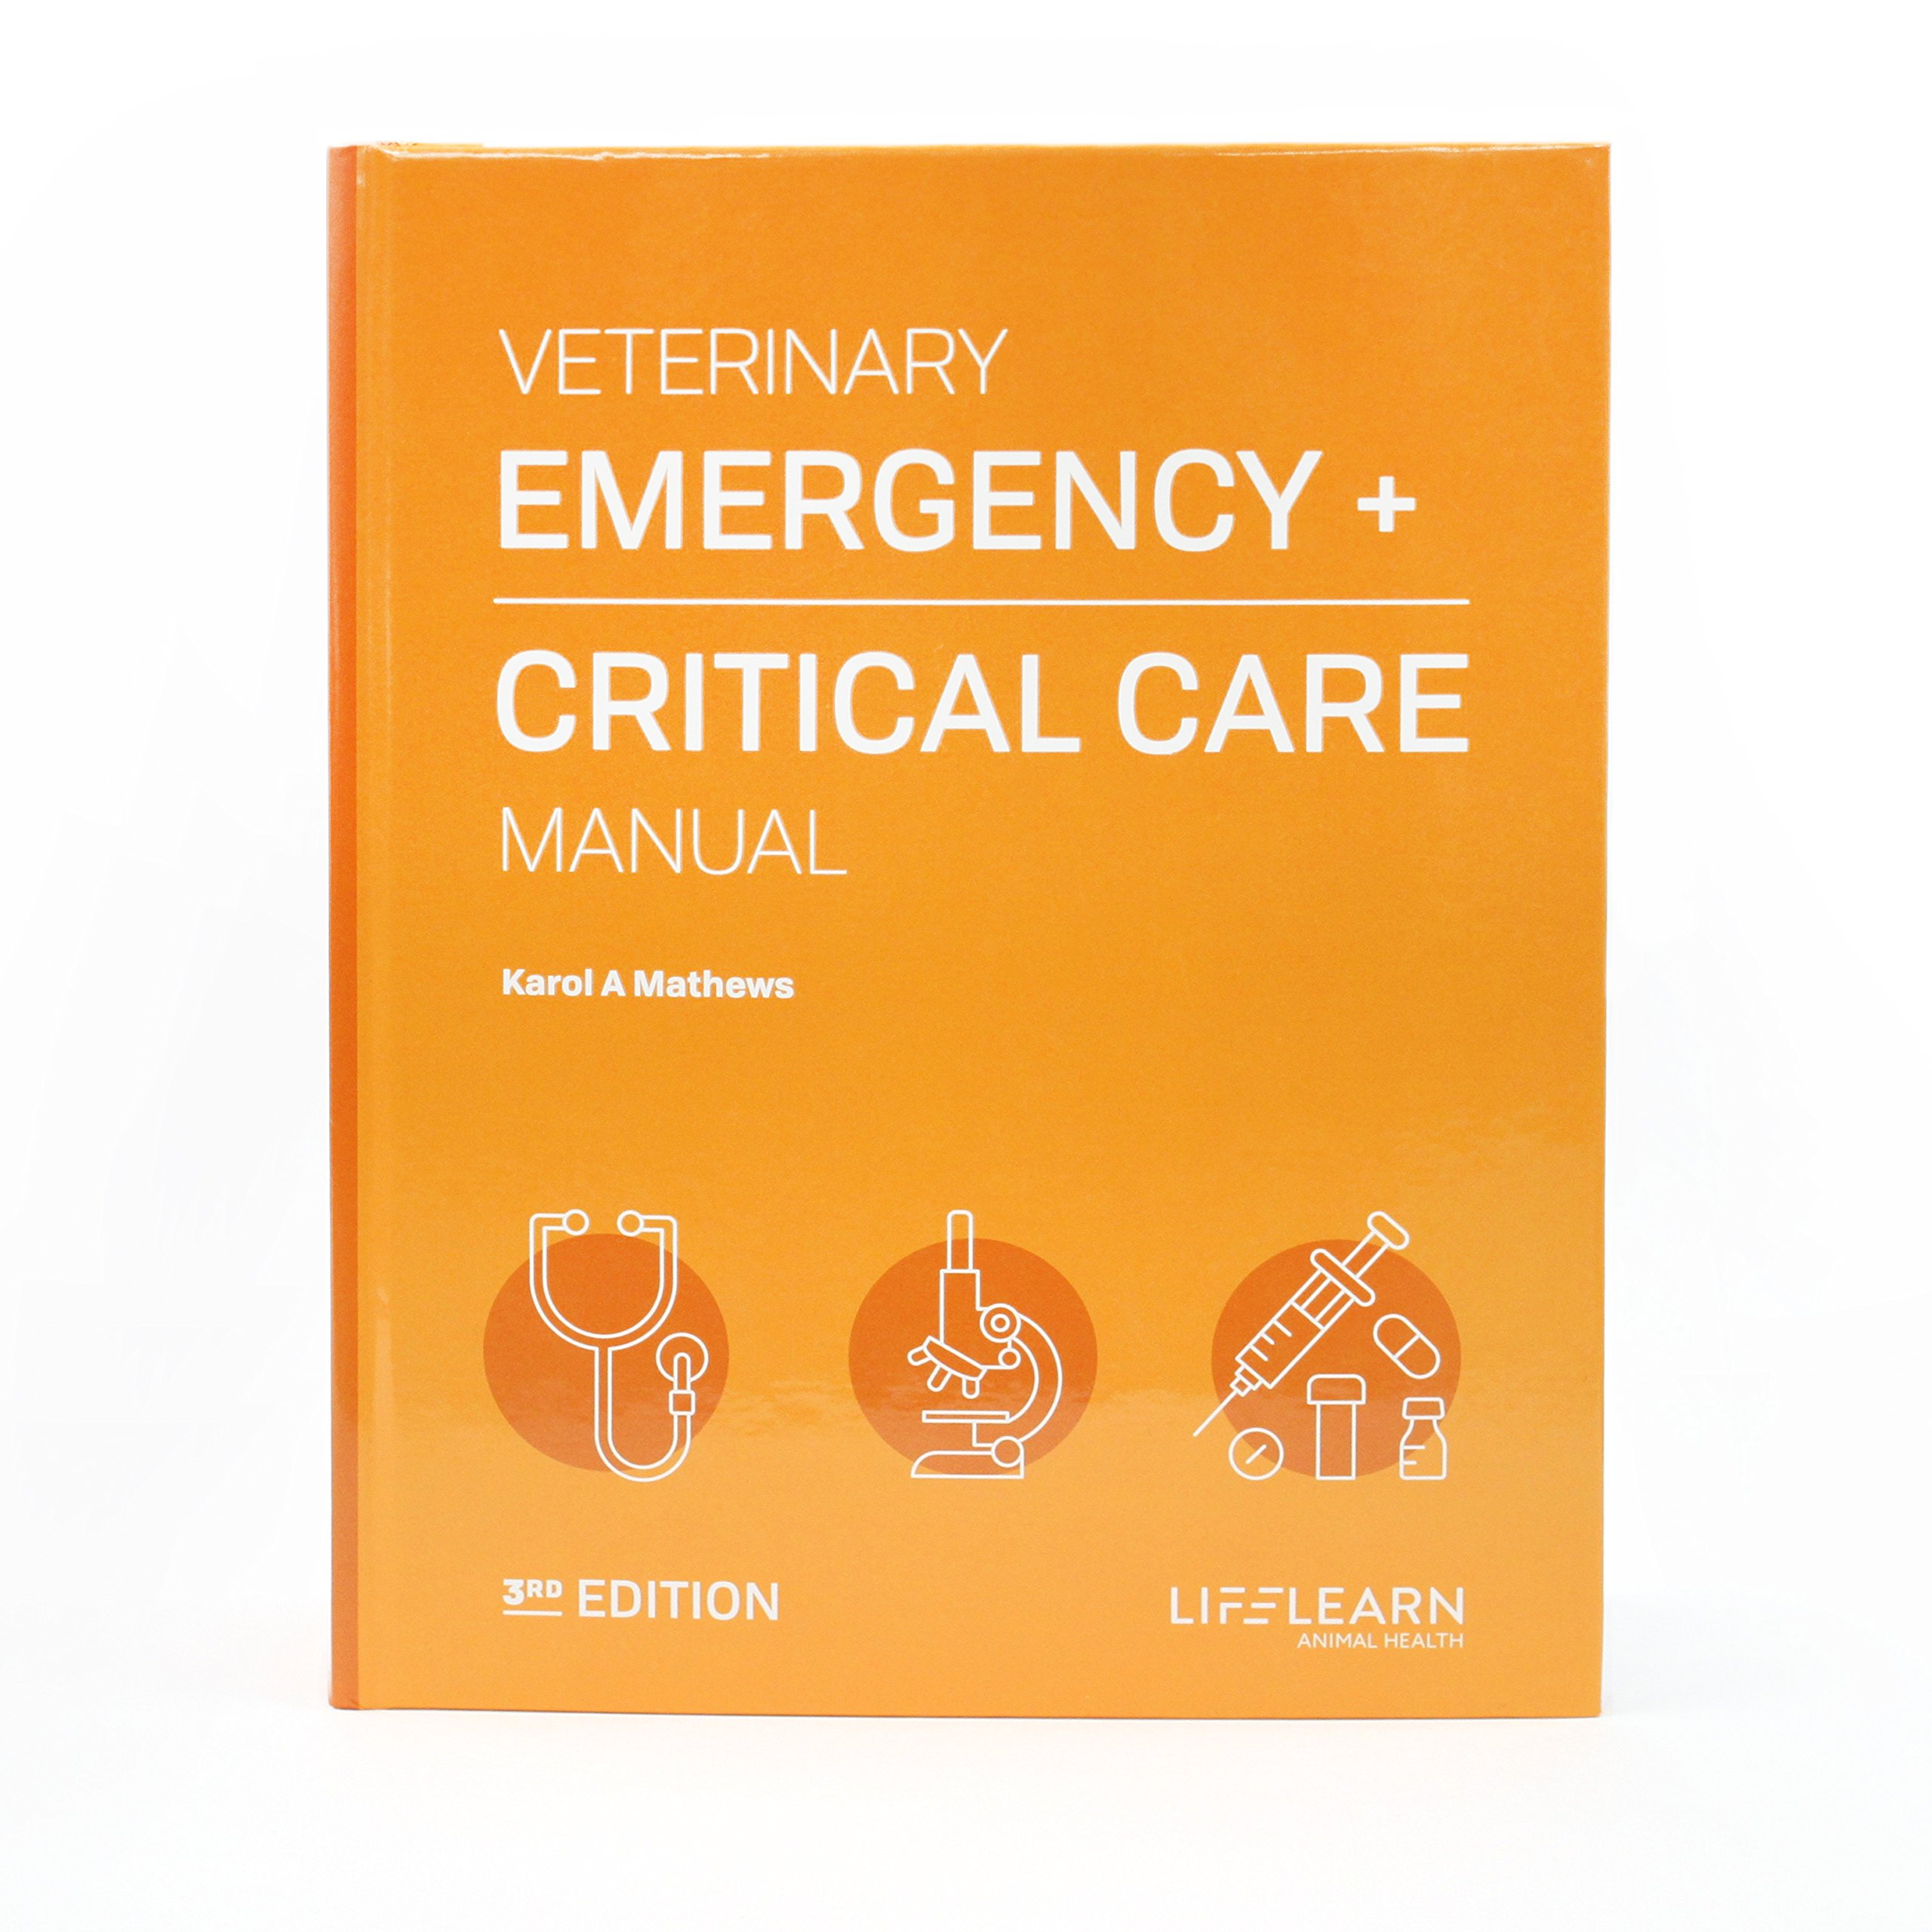 Veterinary emergency and critical care manual 3rd ed by Karol A. Mathews